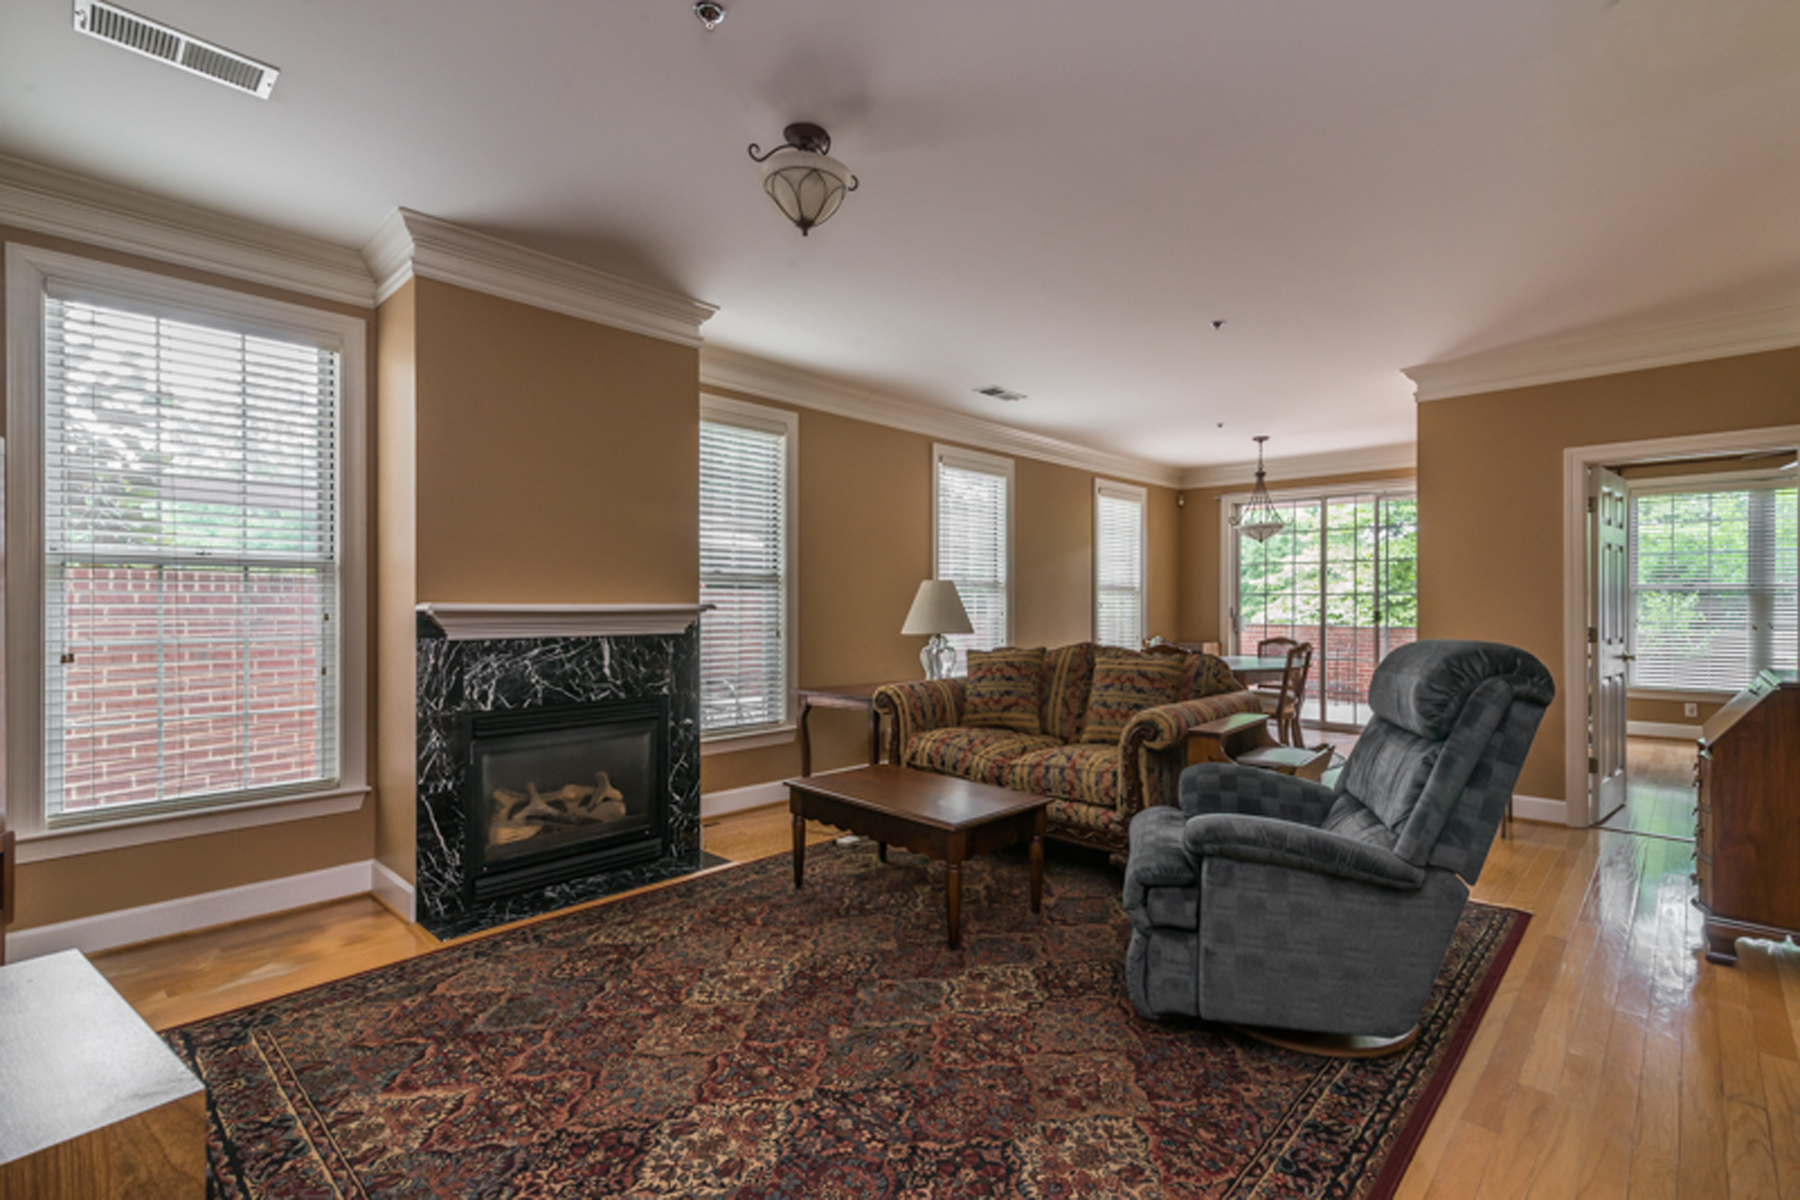 Condominium for Sale at Large One Bedroom With Huge Private Terrace 3101 Howell Mill Road #107 Buckhead, Atlanta, Georgia 30327 United States